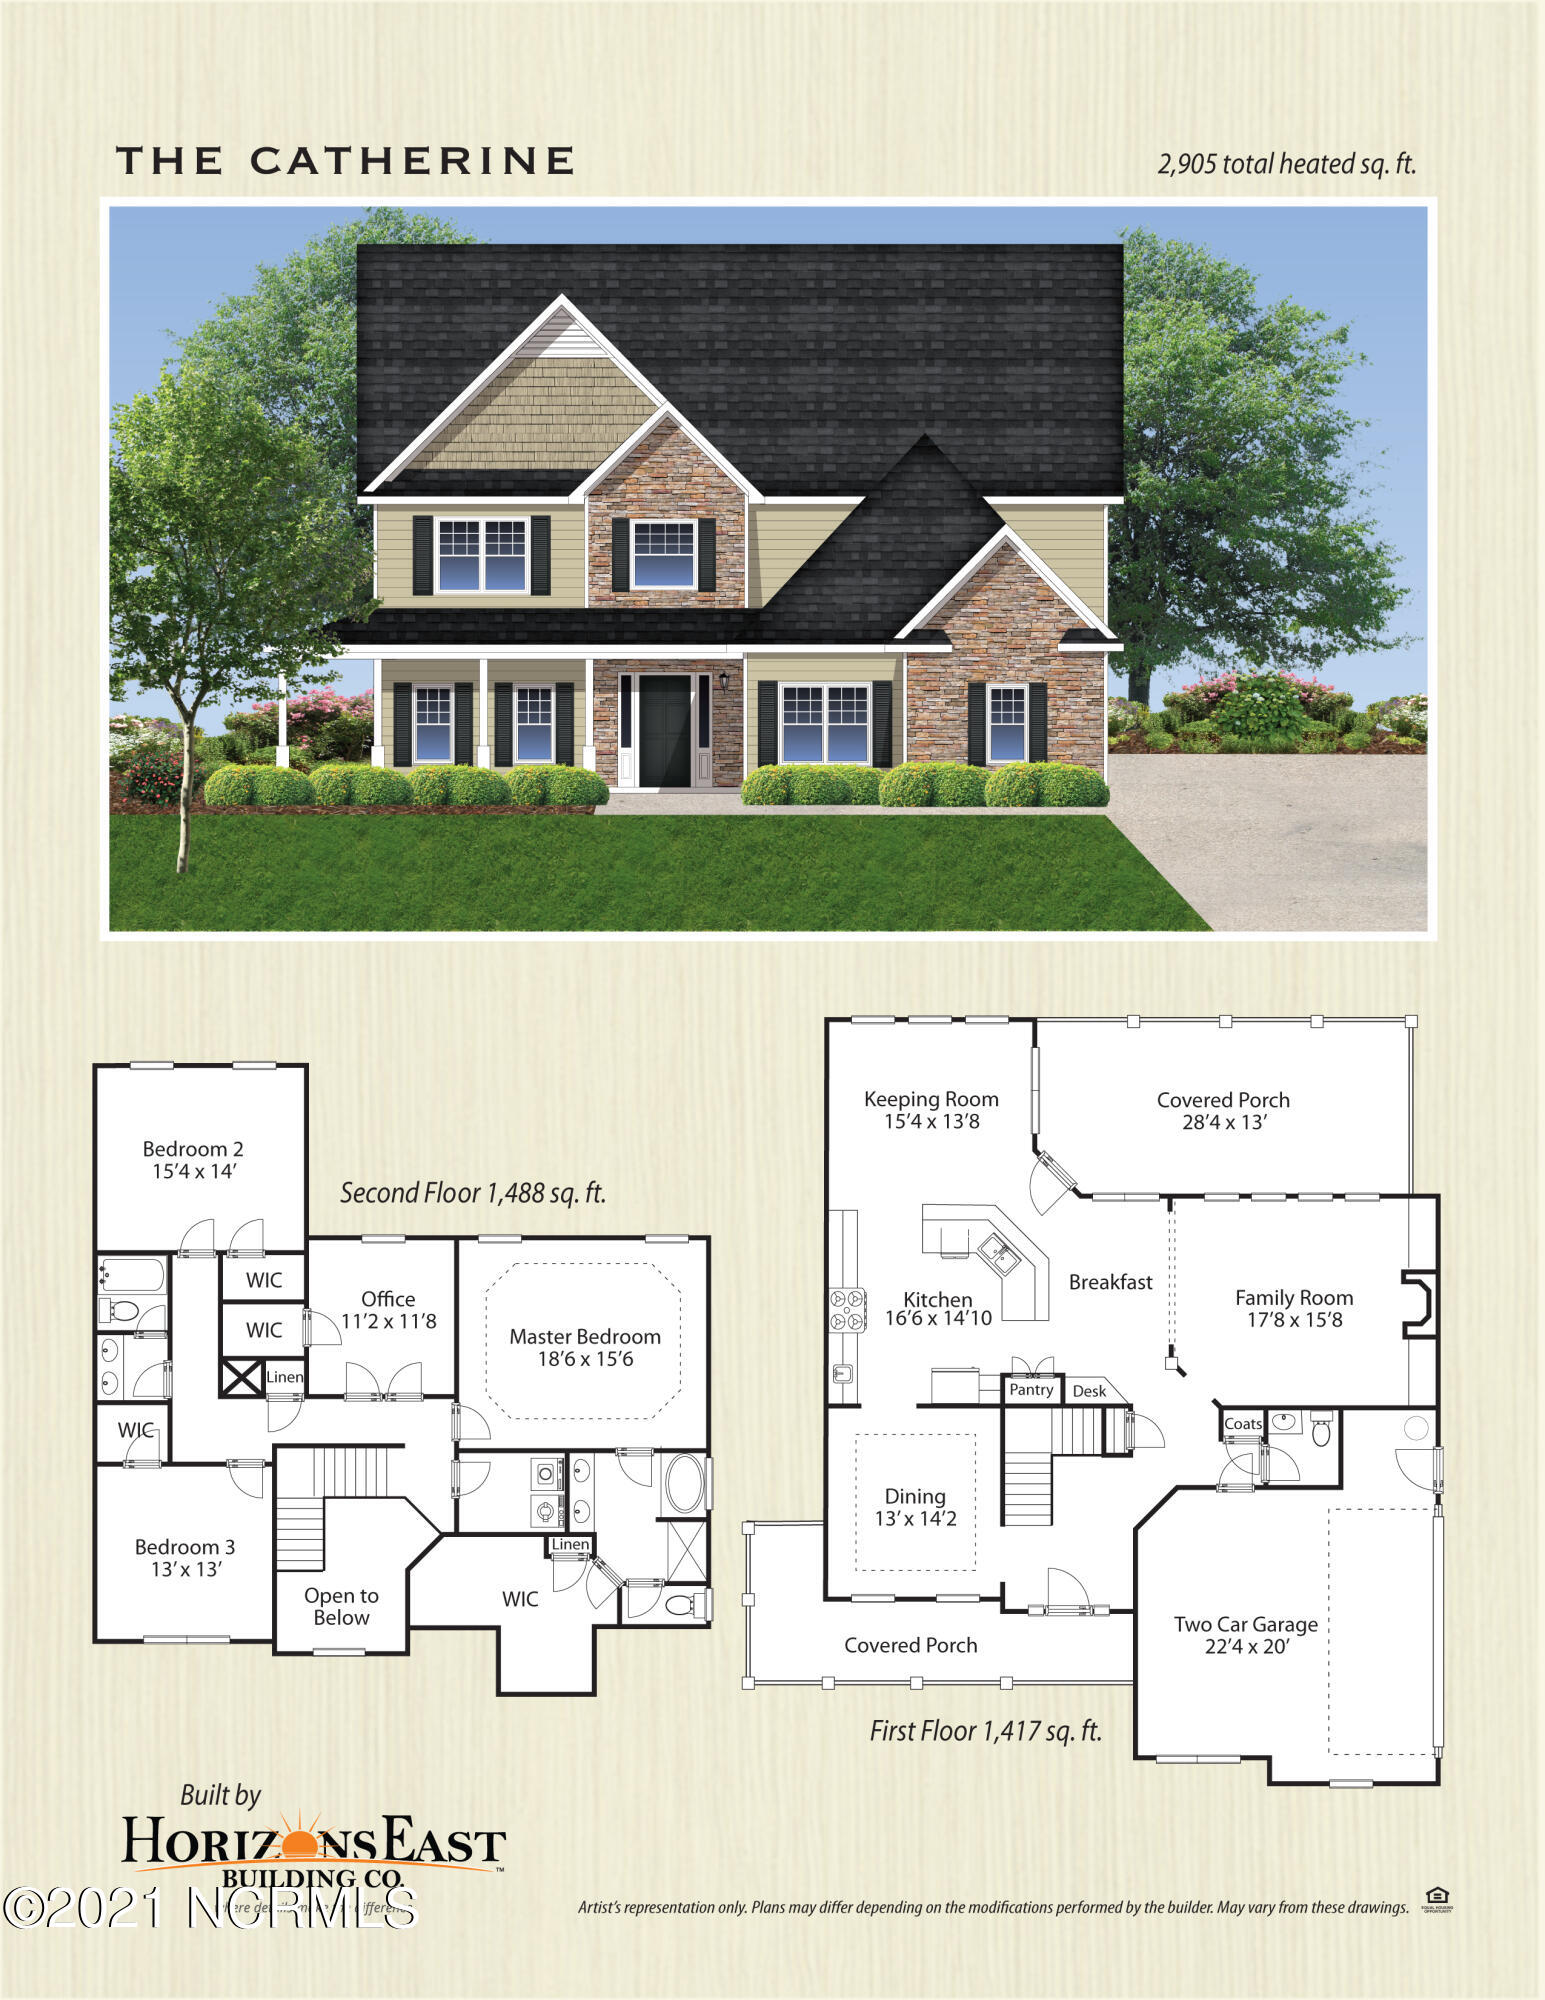 Introducing the ''Catherine'' floor plan at Surf City's newest subdivision, Magnolia Reserve! This new home offers 4 bedrooms, 2.5 bathrooms, and a 2-car garage; at approximately 2,905 heated square feet! Located in a quiet country setting yet only minutes to local beaches, schools and shopping! Featuring architectural shingles, low maintenance vinyl siding, energy efficient heat pump, a sodded front yard, and professional landscaping. Interior features include designer inspired paint, flooring, lighting, cabinets and countertops. In addition, you will enjoy 9' smooth ceilings on the first floor, ceiling fans in the living room and master bedroom, plus stainless-steel appliances! Contact me today for more information!